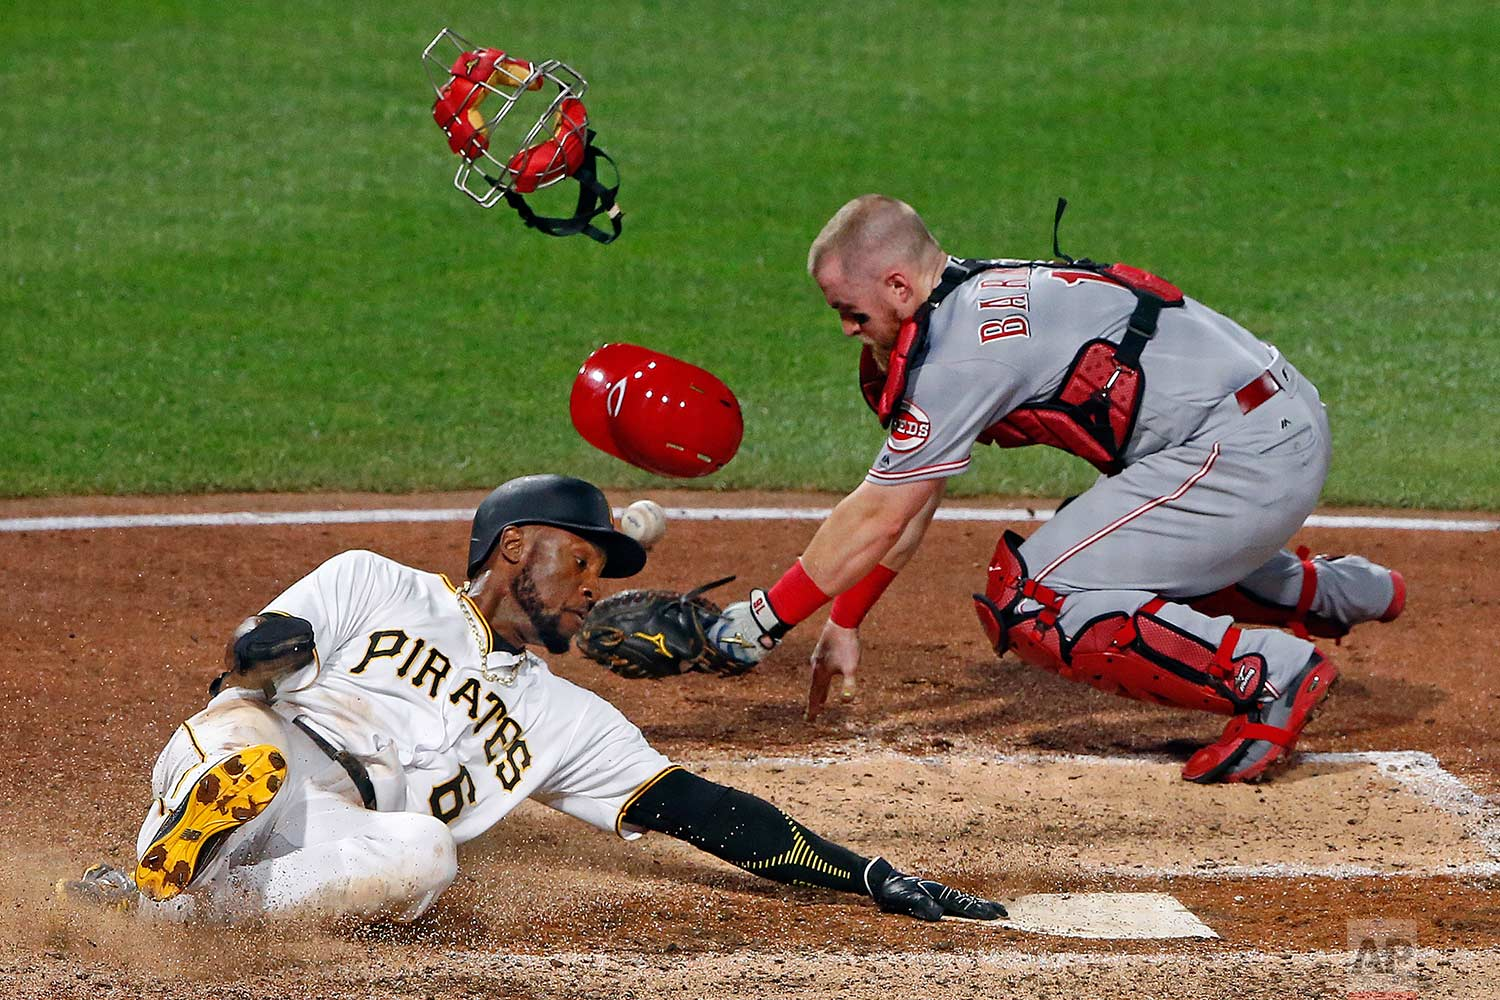 Cincinnati Reds catcher Tucker Barnhart drops the ball after tagging Pittsburgh Pirates' Starling Marte (6), who touches the plate to score the sixth inning of a baseball game in Pittsburgh, Wednesday, Aug. 2, 2017. (AP Photo/Gene J. Puskar)